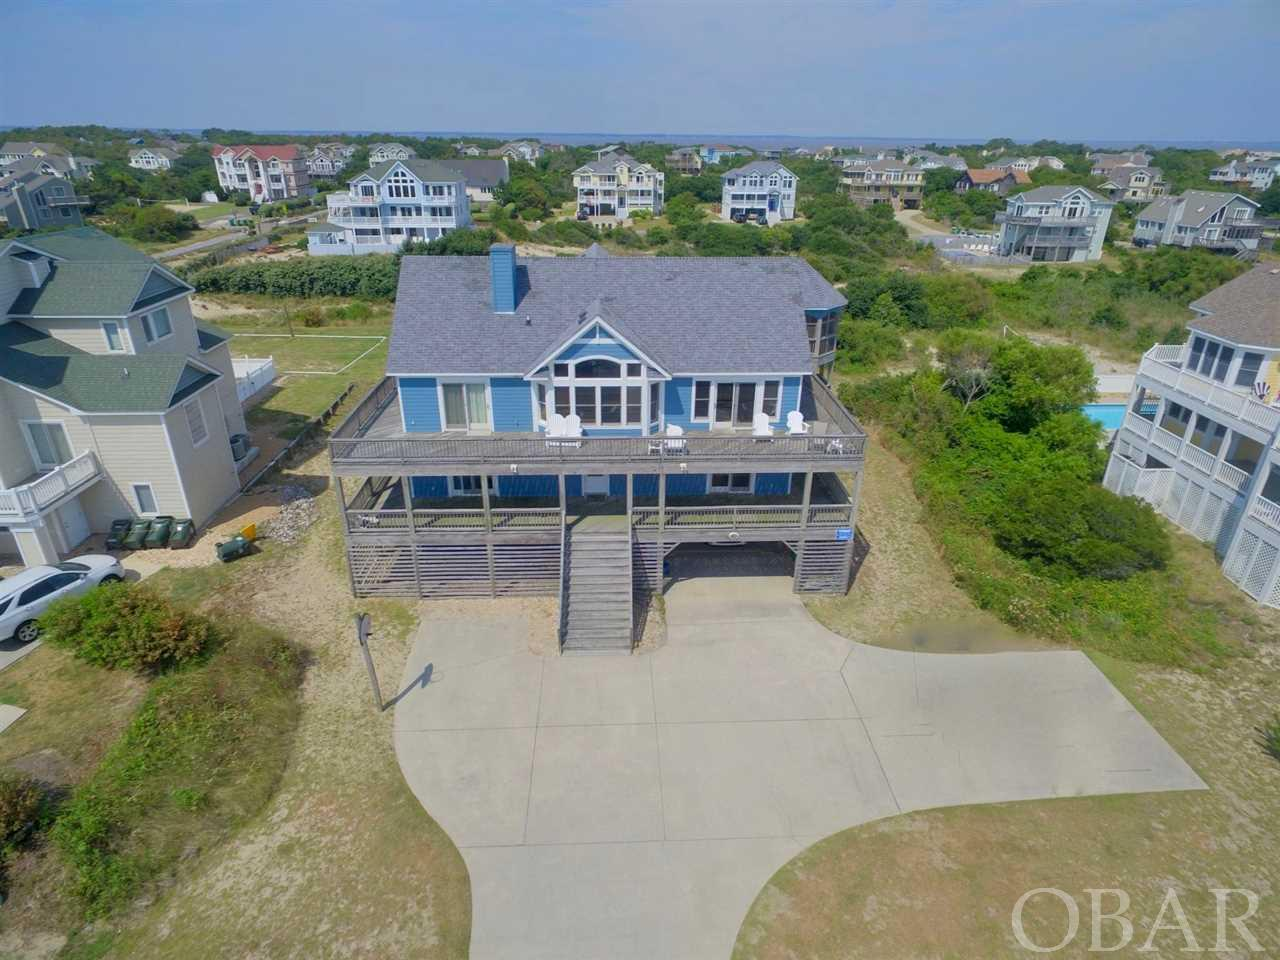 902 Lighthouse Drive,Corolla,NC 27927,6 Bedrooms Bedrooms,4 BathroomsBathrooms,Residential,Lighthouse Drive,101228